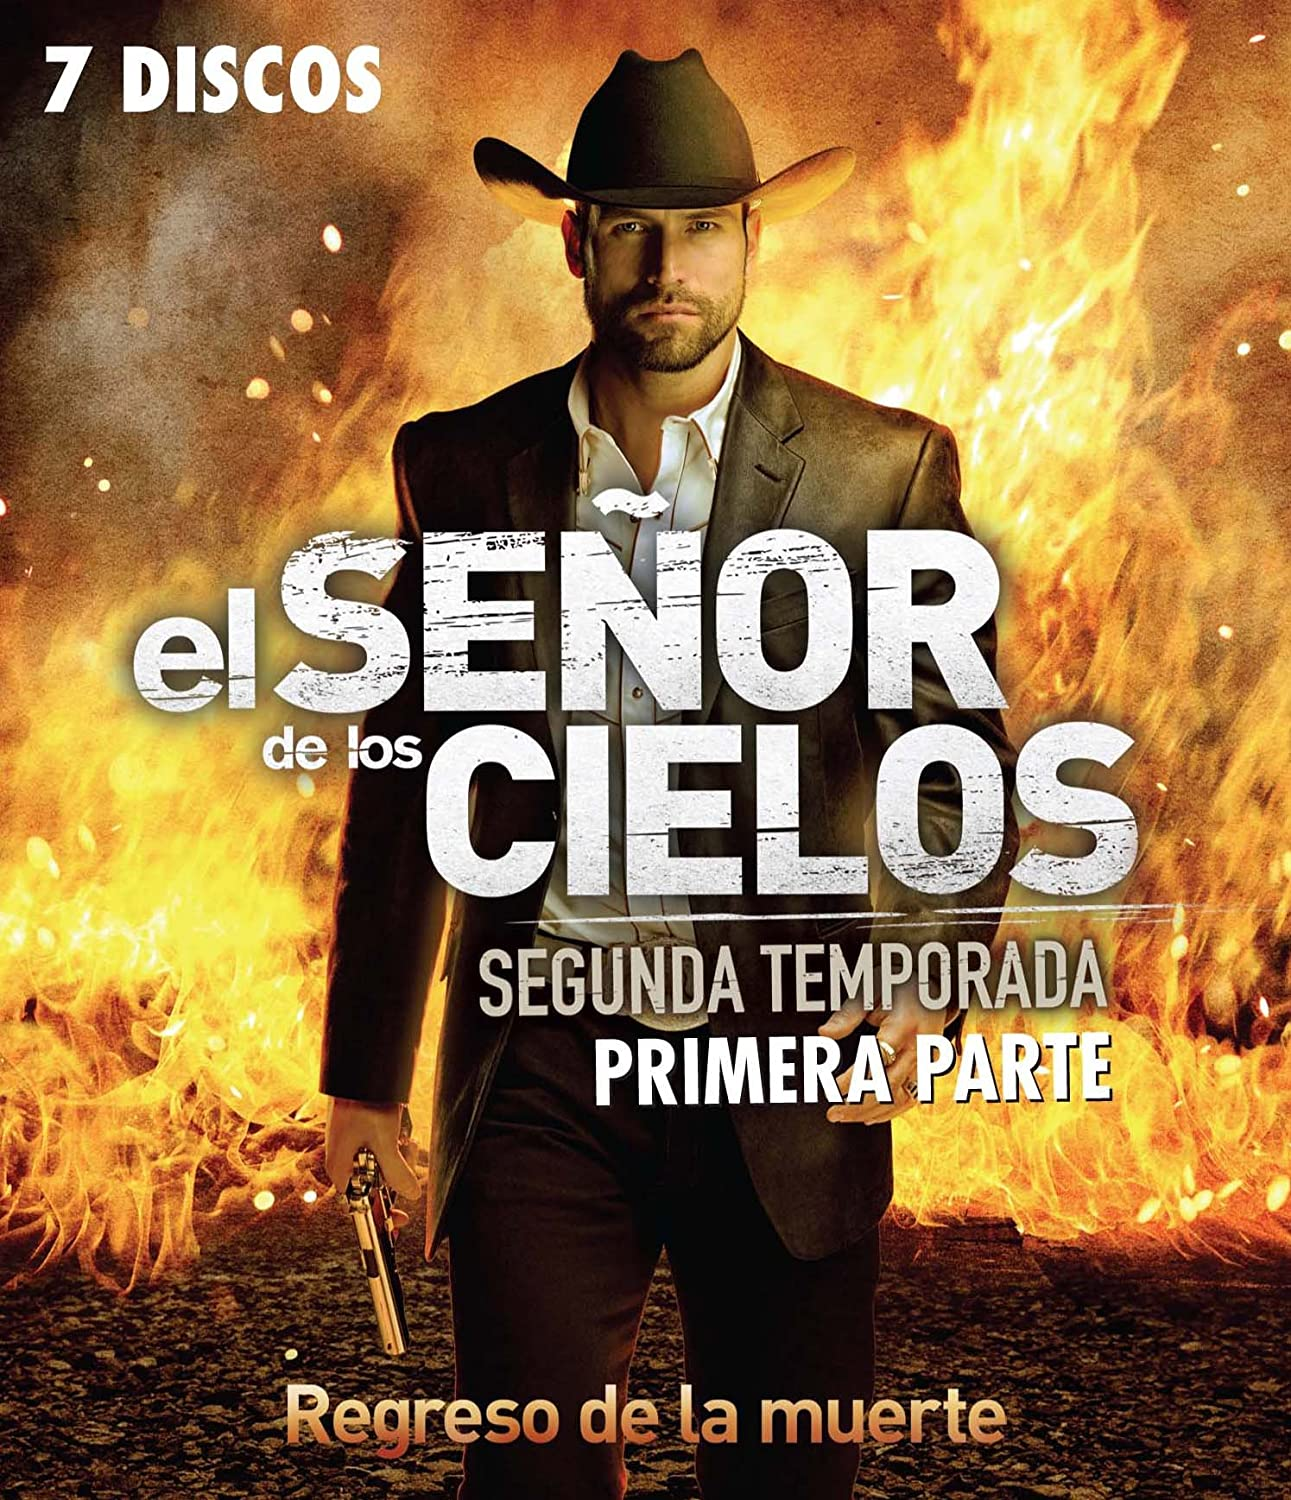 El Senor De Los Cielos Segunda Temporada Primera Parte Blu Ray Season 2 Part 1 Spanish Only No English Options Movies Tv